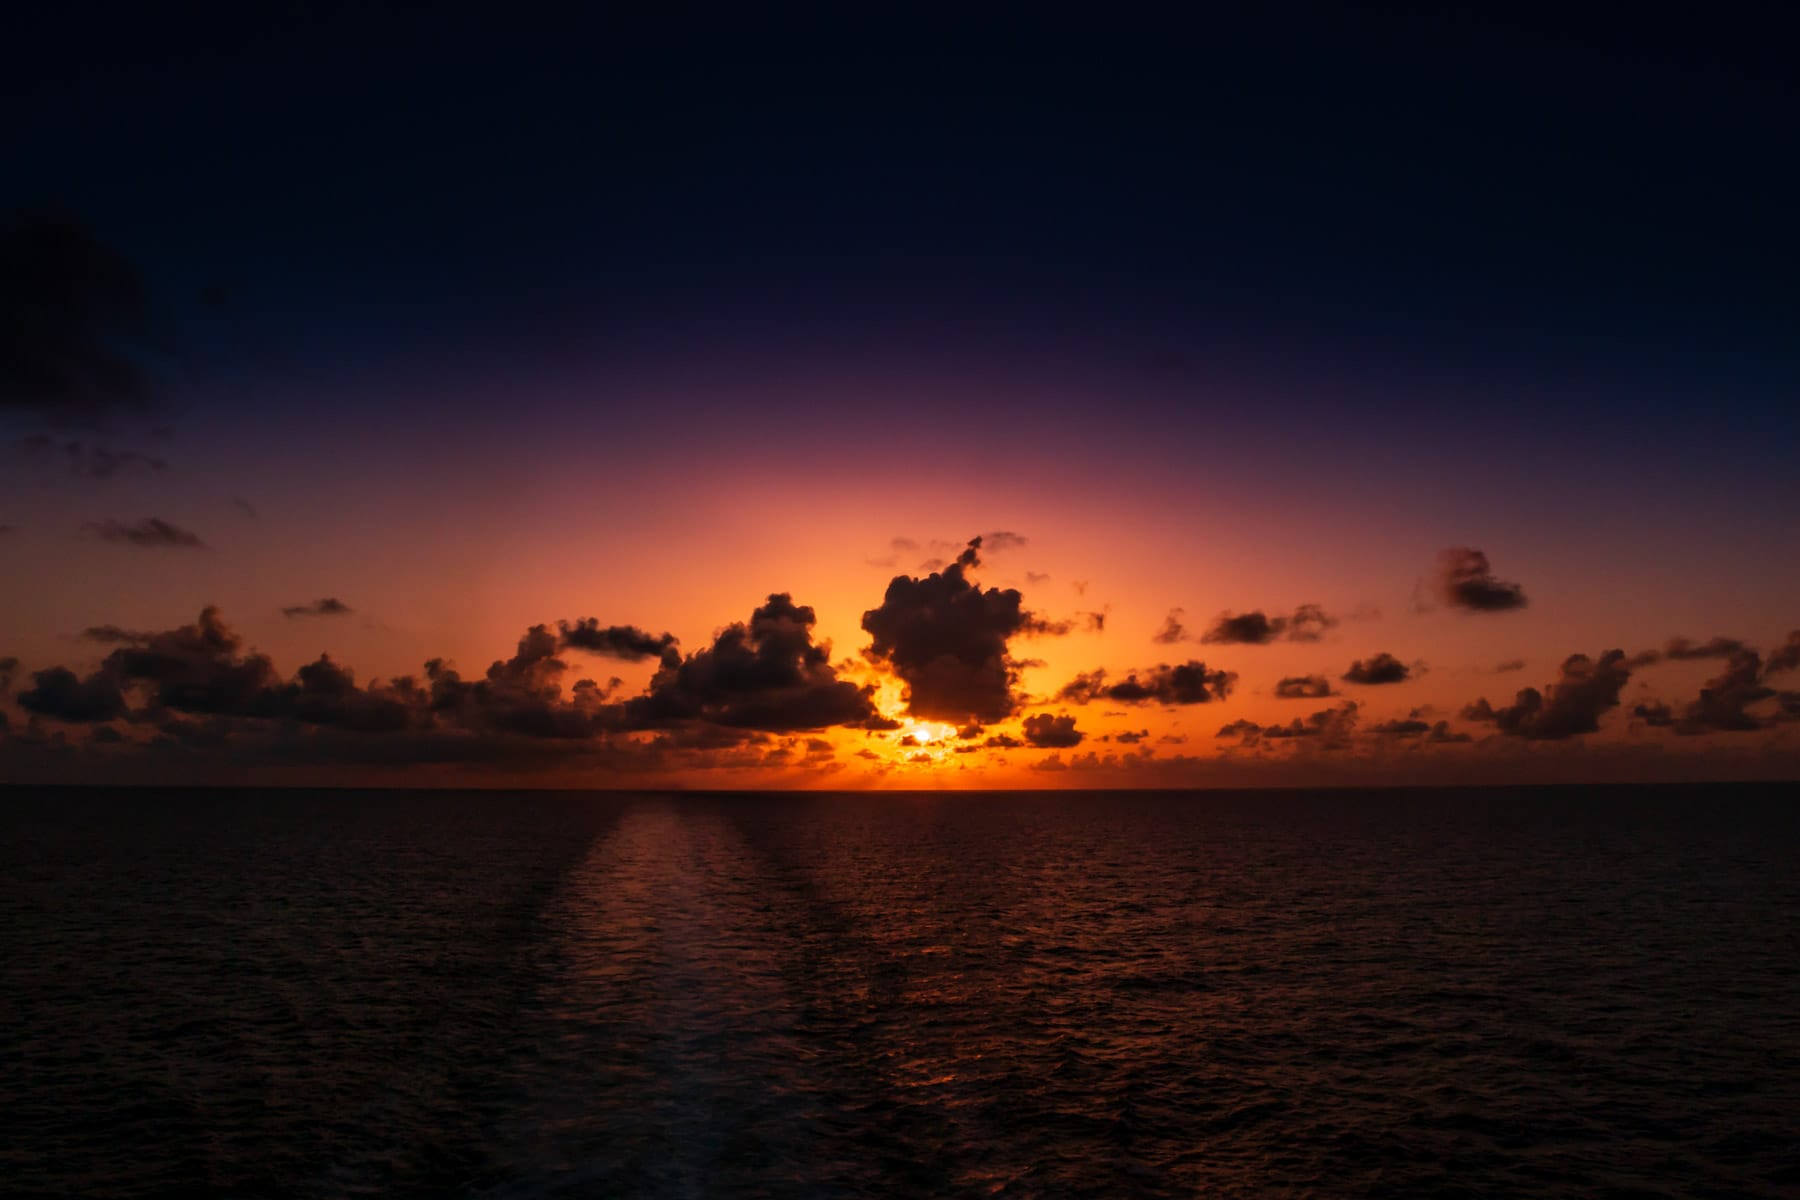 The sun sets on the Gulf of Mexico somewhere offshore of Galveston Island, Texas.